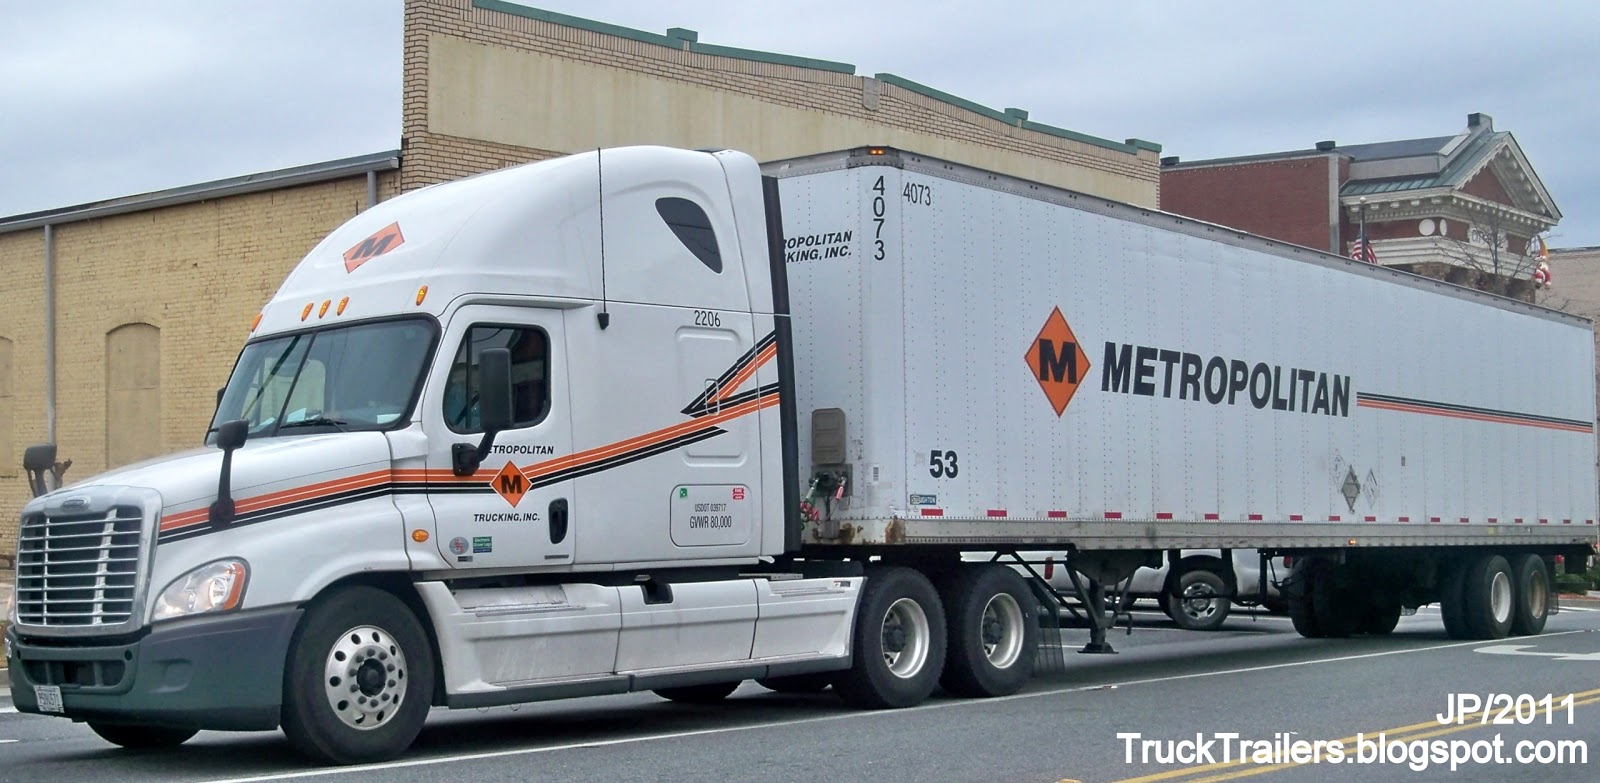 Metropolitan trucking inc saddle brook new jersey freightliner sleeper cab tractor truck stoughton trailer in georgia